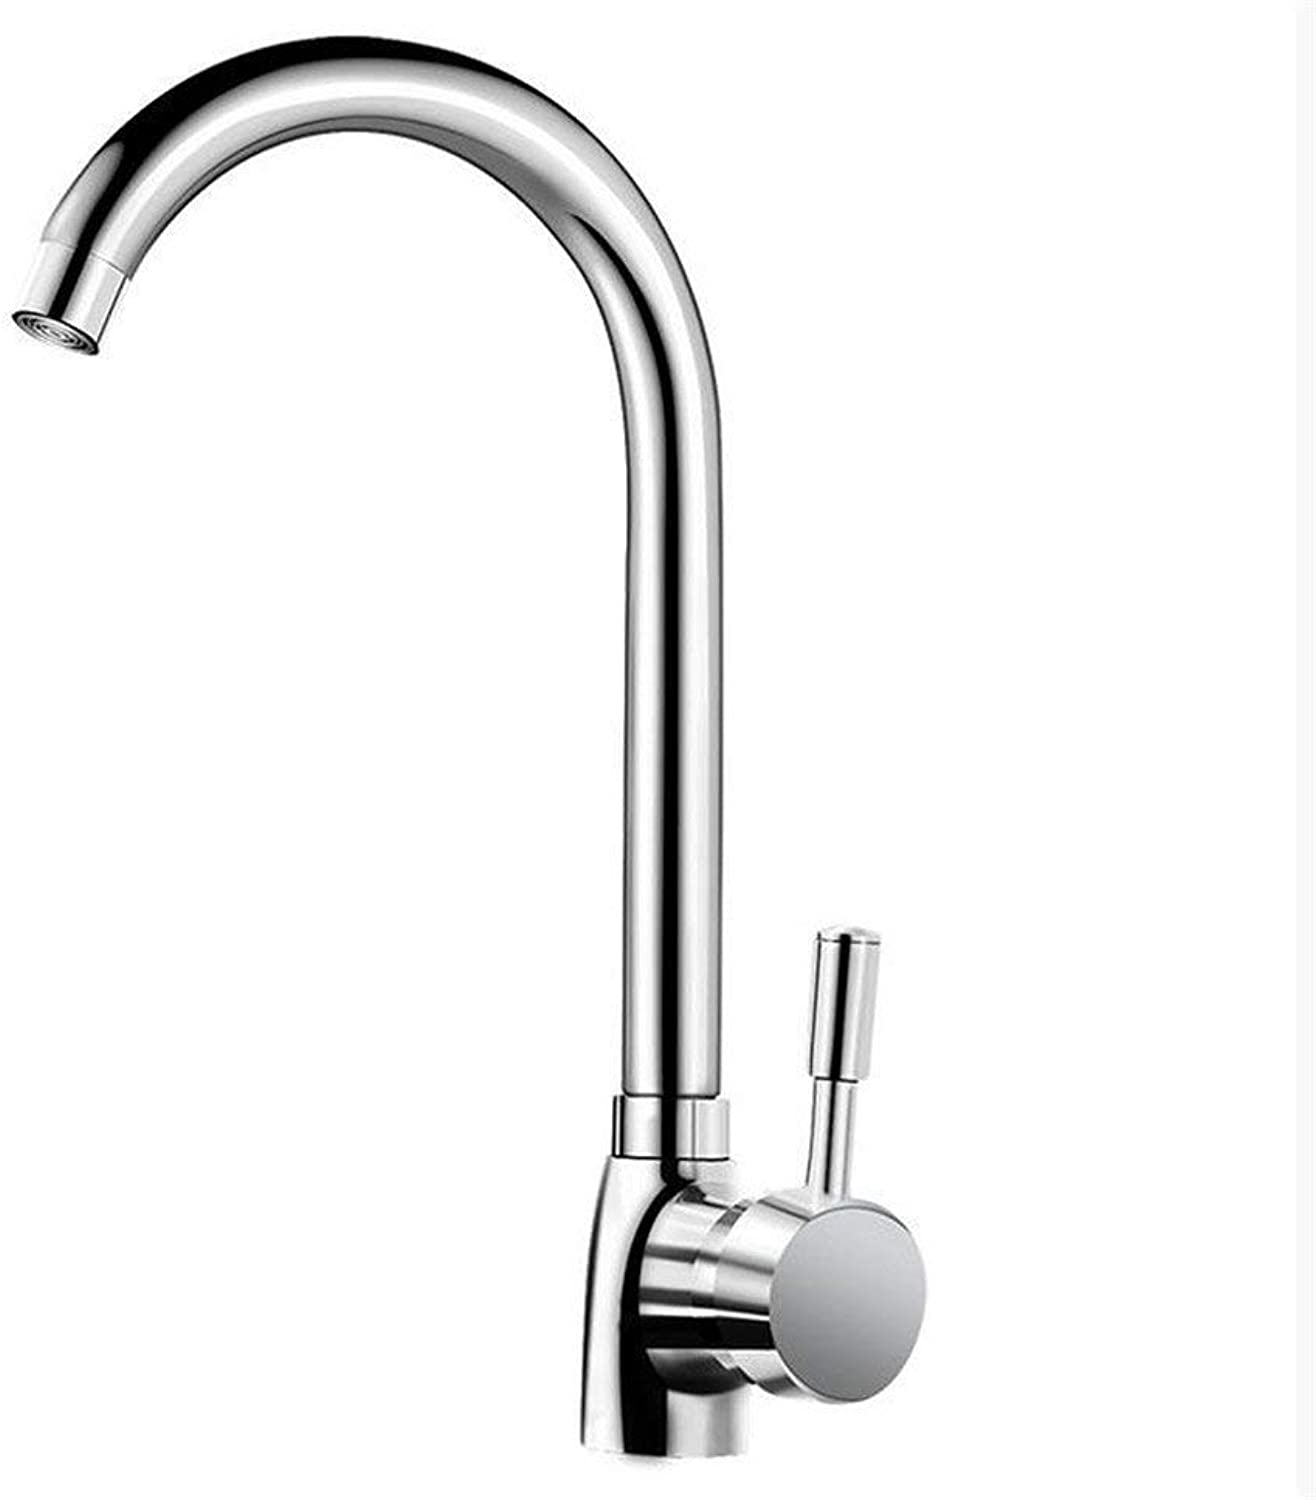 Oudan All Copper Kitchen Faucet redatably Cold Vegetables Basin Sink Faucet Mixing Valve Ceramic Valve Core Pool (color   -, Size   -)